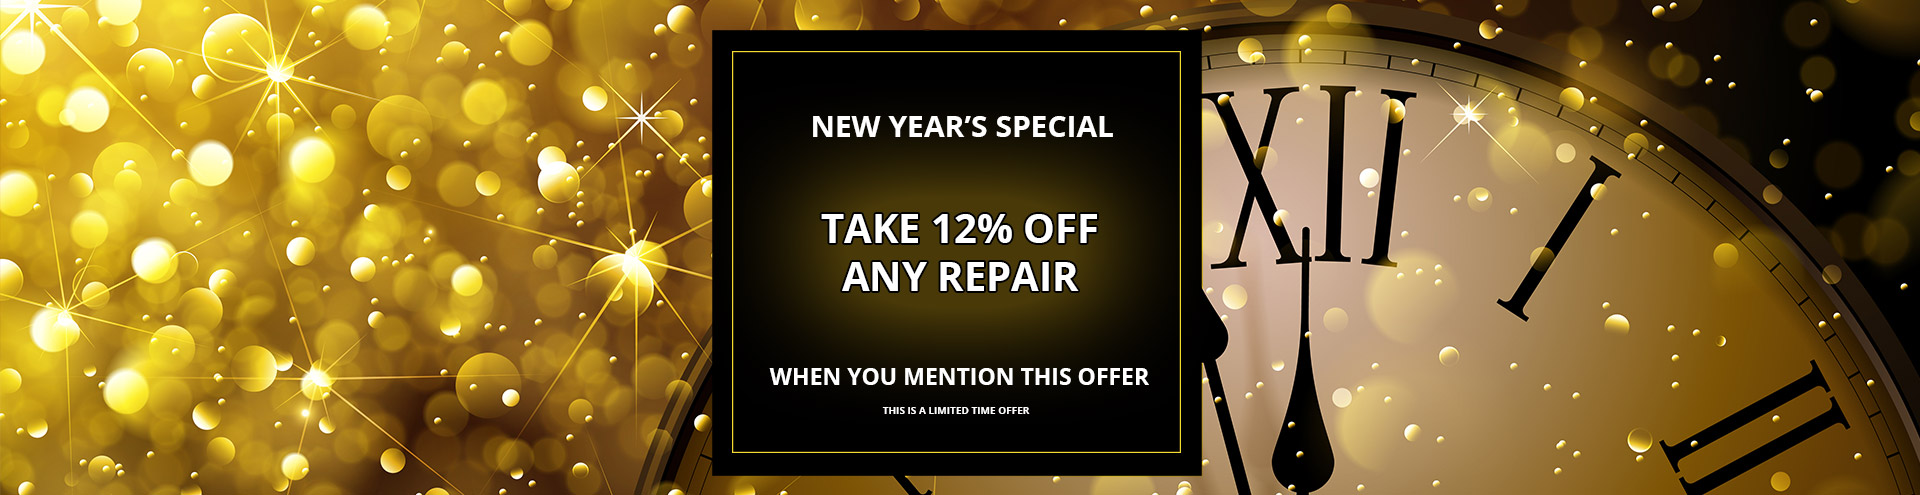 New Year's Special, take 12% off any repair